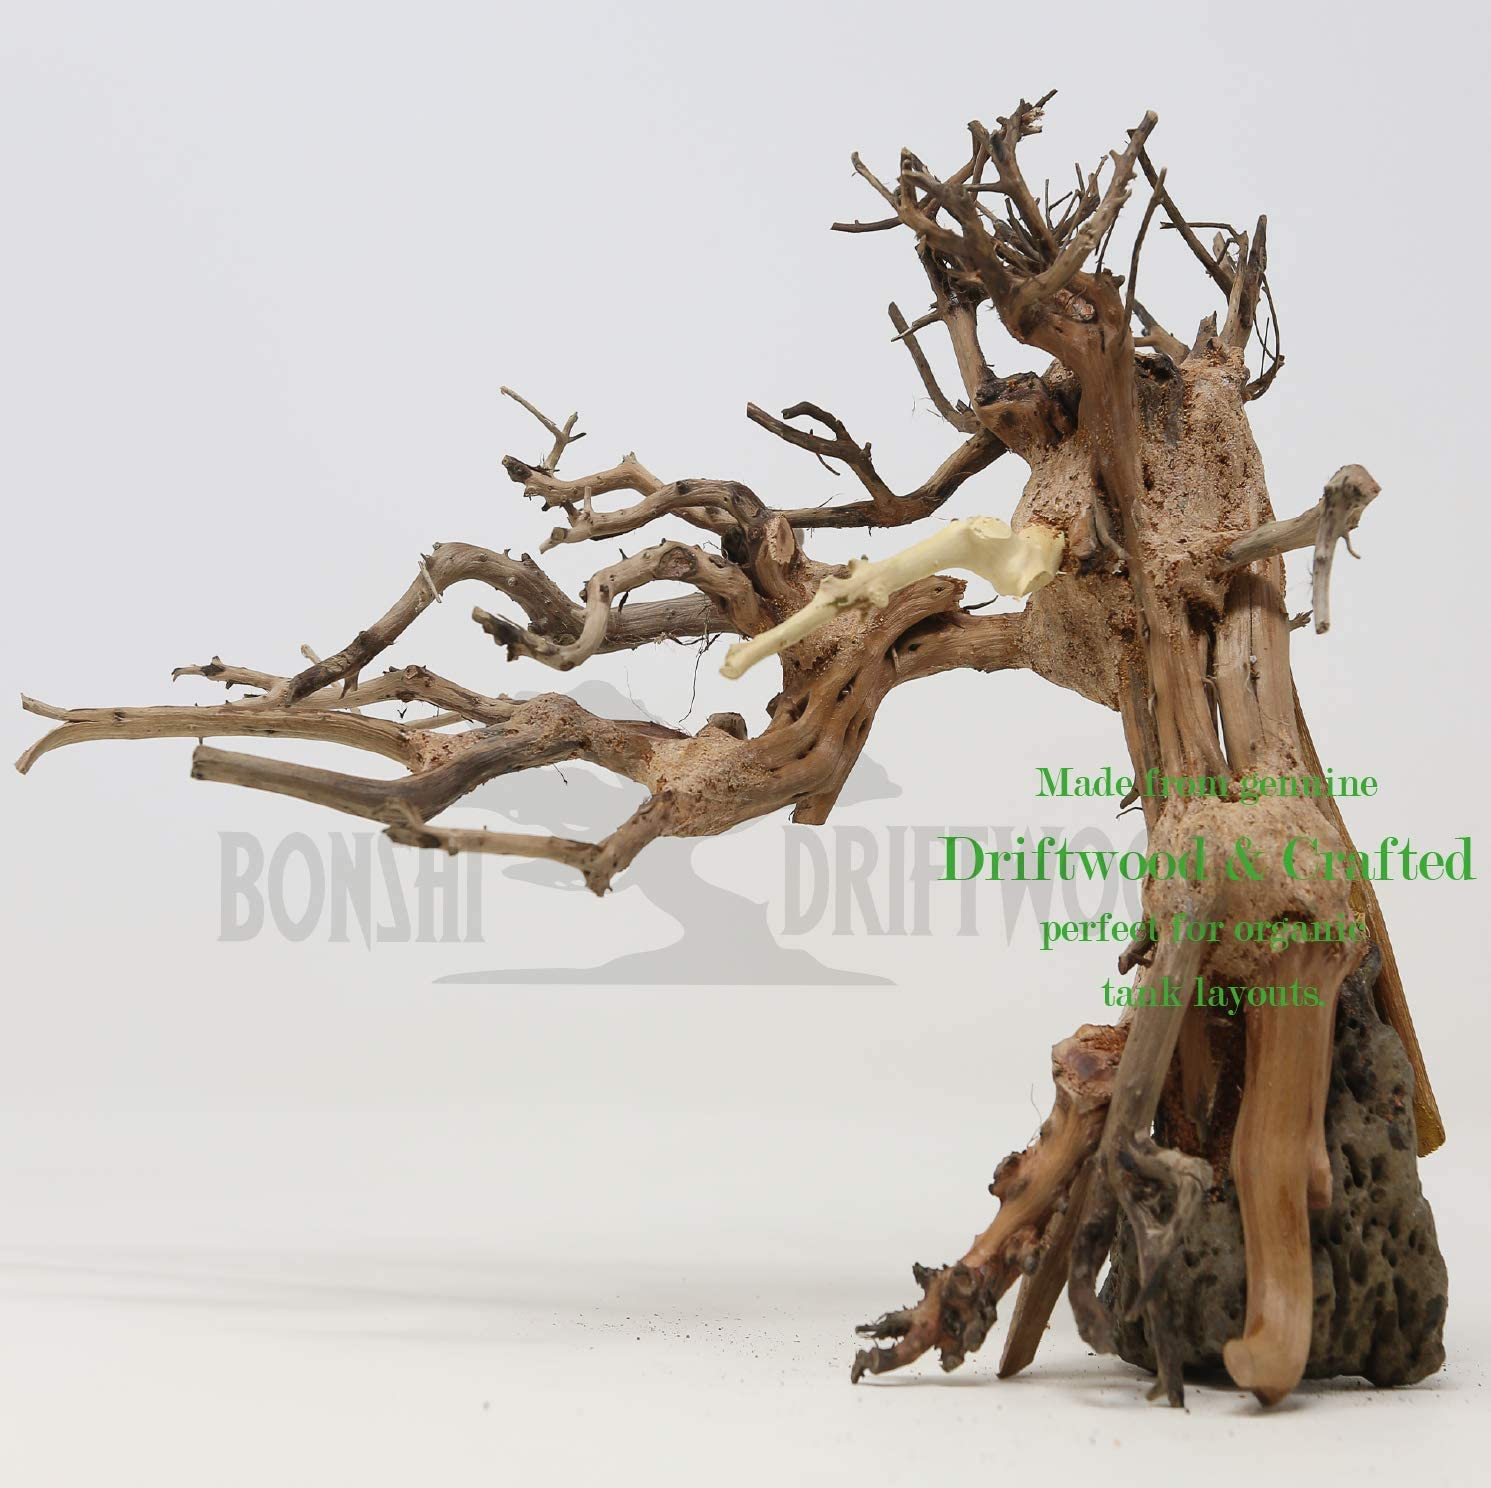 Amazon Com Bonsai Driftwood Aquarium Tree Lsc Random Pick 8in H X 11in L Natural Handcrafted Fish Tank Decoration Helps Balance Water Ph Levels Stabilizes Environments Easy To Install Pet Supplies